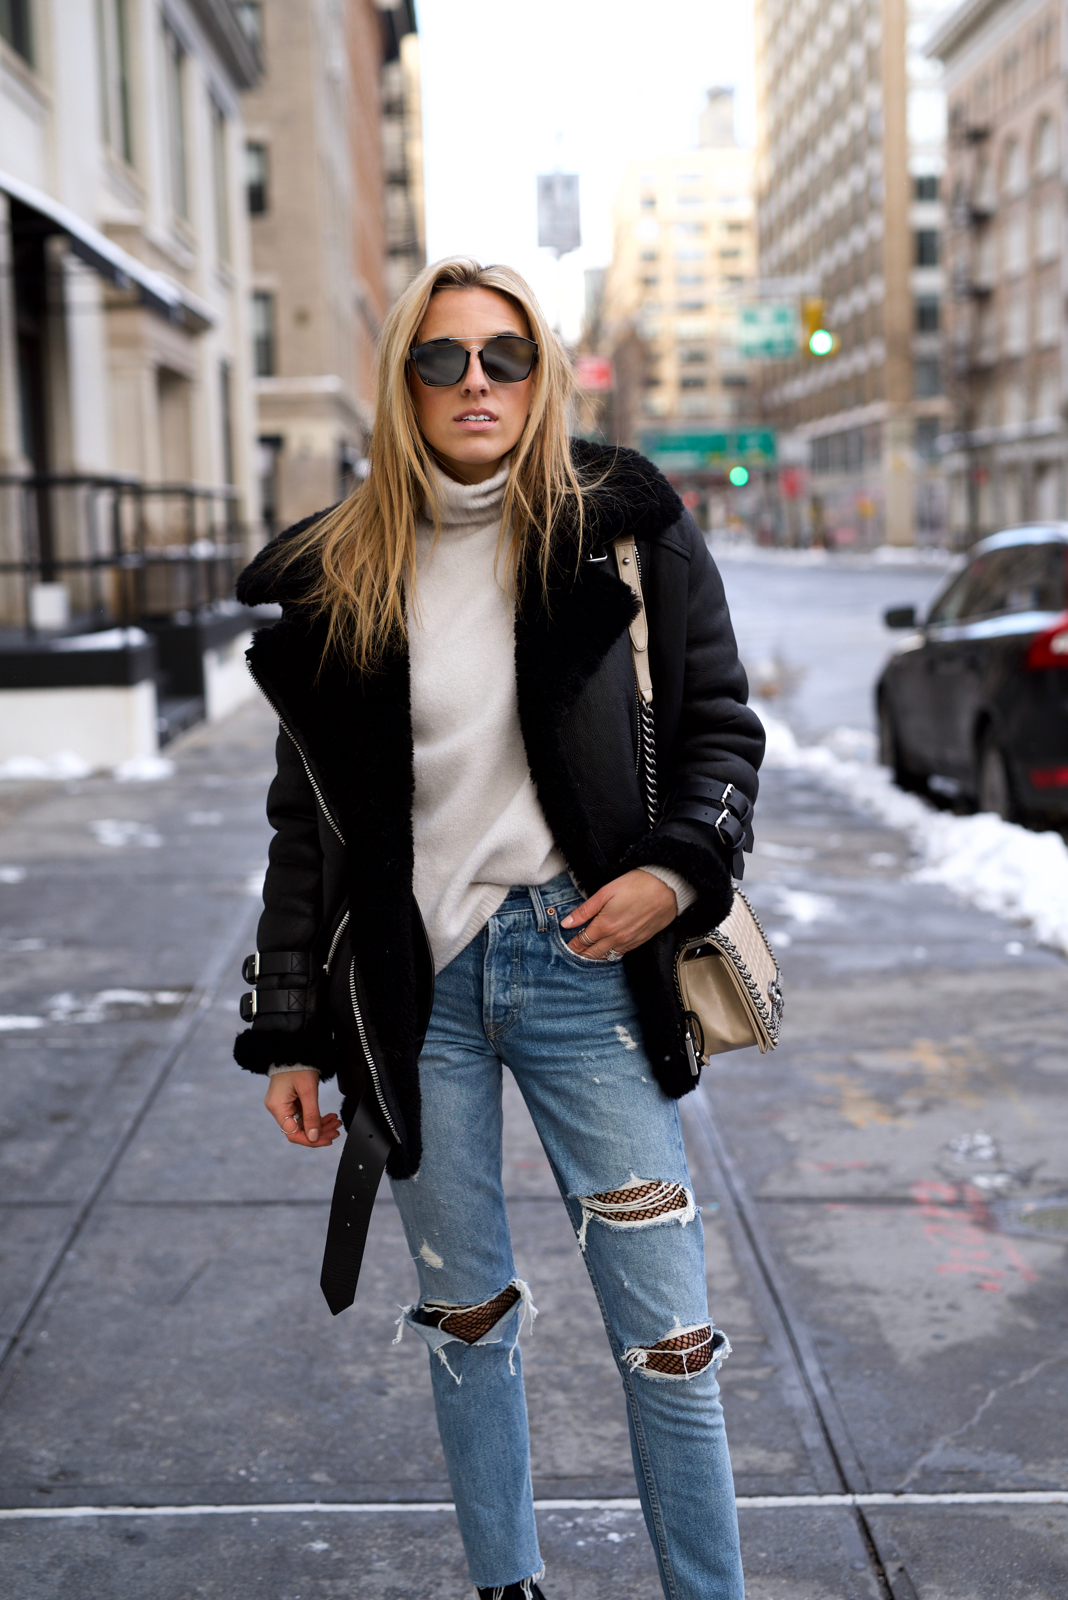 Grlfrnd denim, Chanel bag, Acne Studios jacket, Dior sunglasses